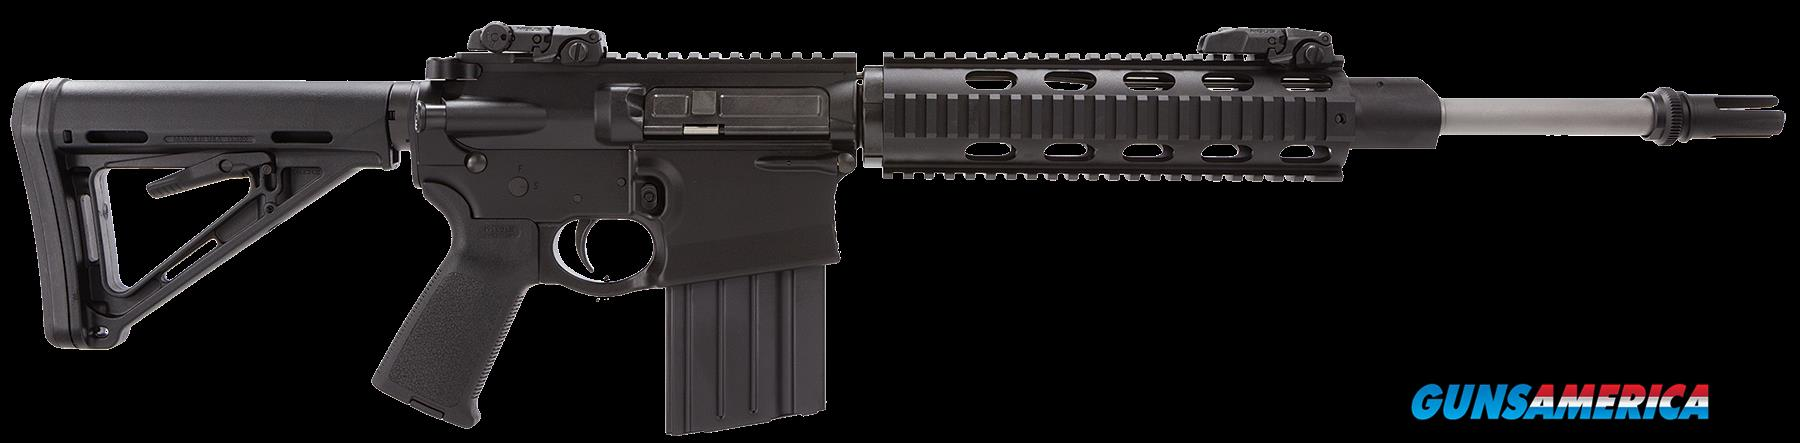 "DPMS 60222 GII Recon Semi-Automatic 308 Winchester/7.62 NATO 16"" 20+1 Magpul MOE Black Stock  Guns > Rifles > DPMS - Panther Arms > Complete Rifle"